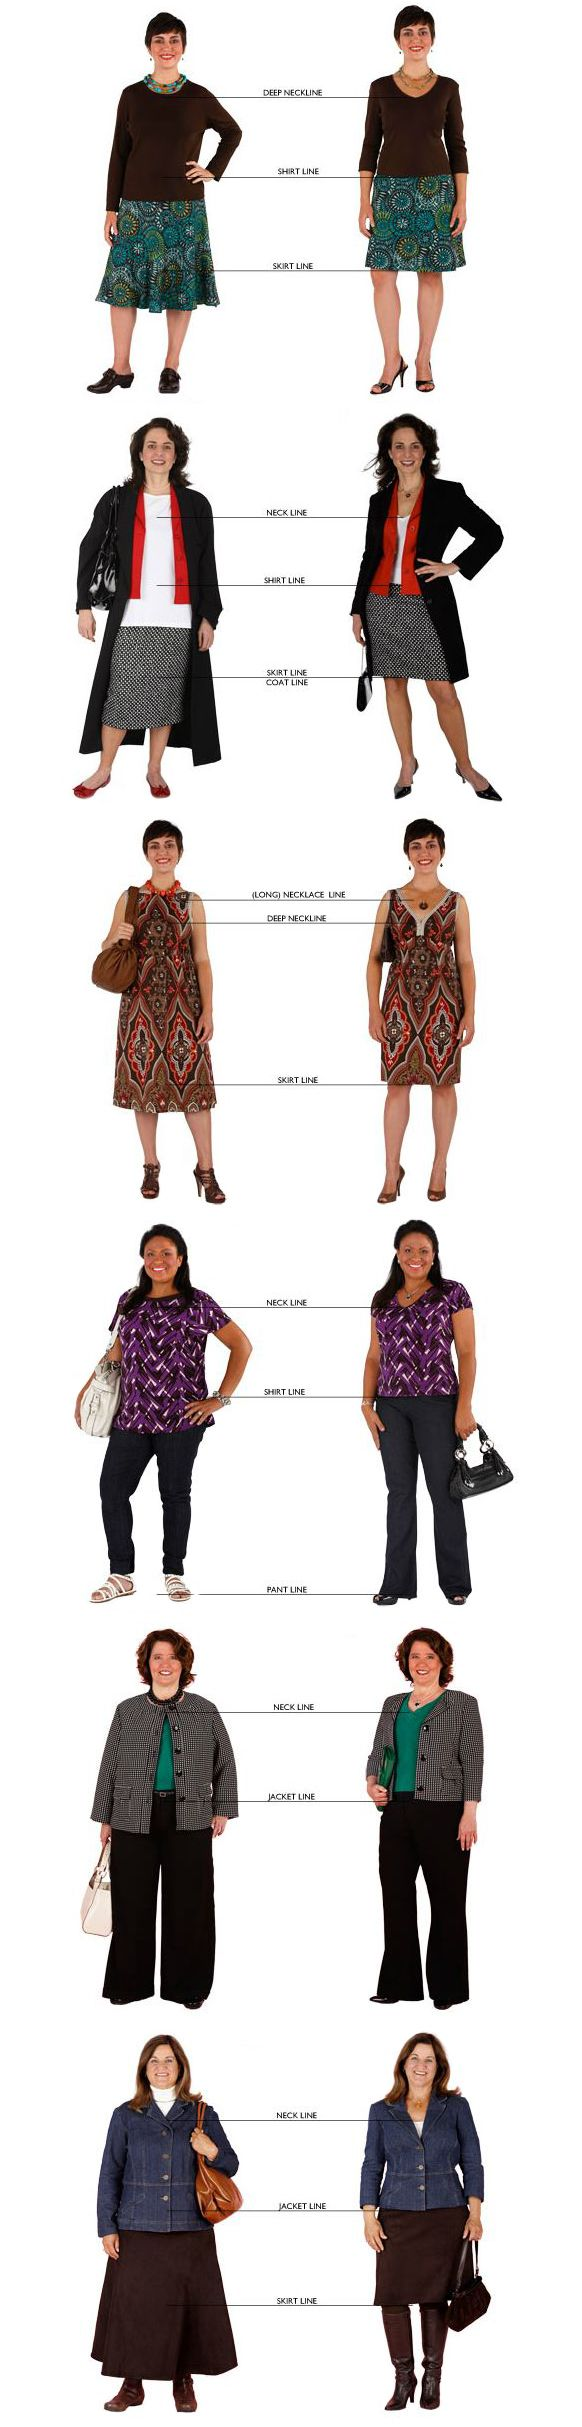 Dress to flatter your shape using ideal fit and proportions bodies floridaeventfo Image collections